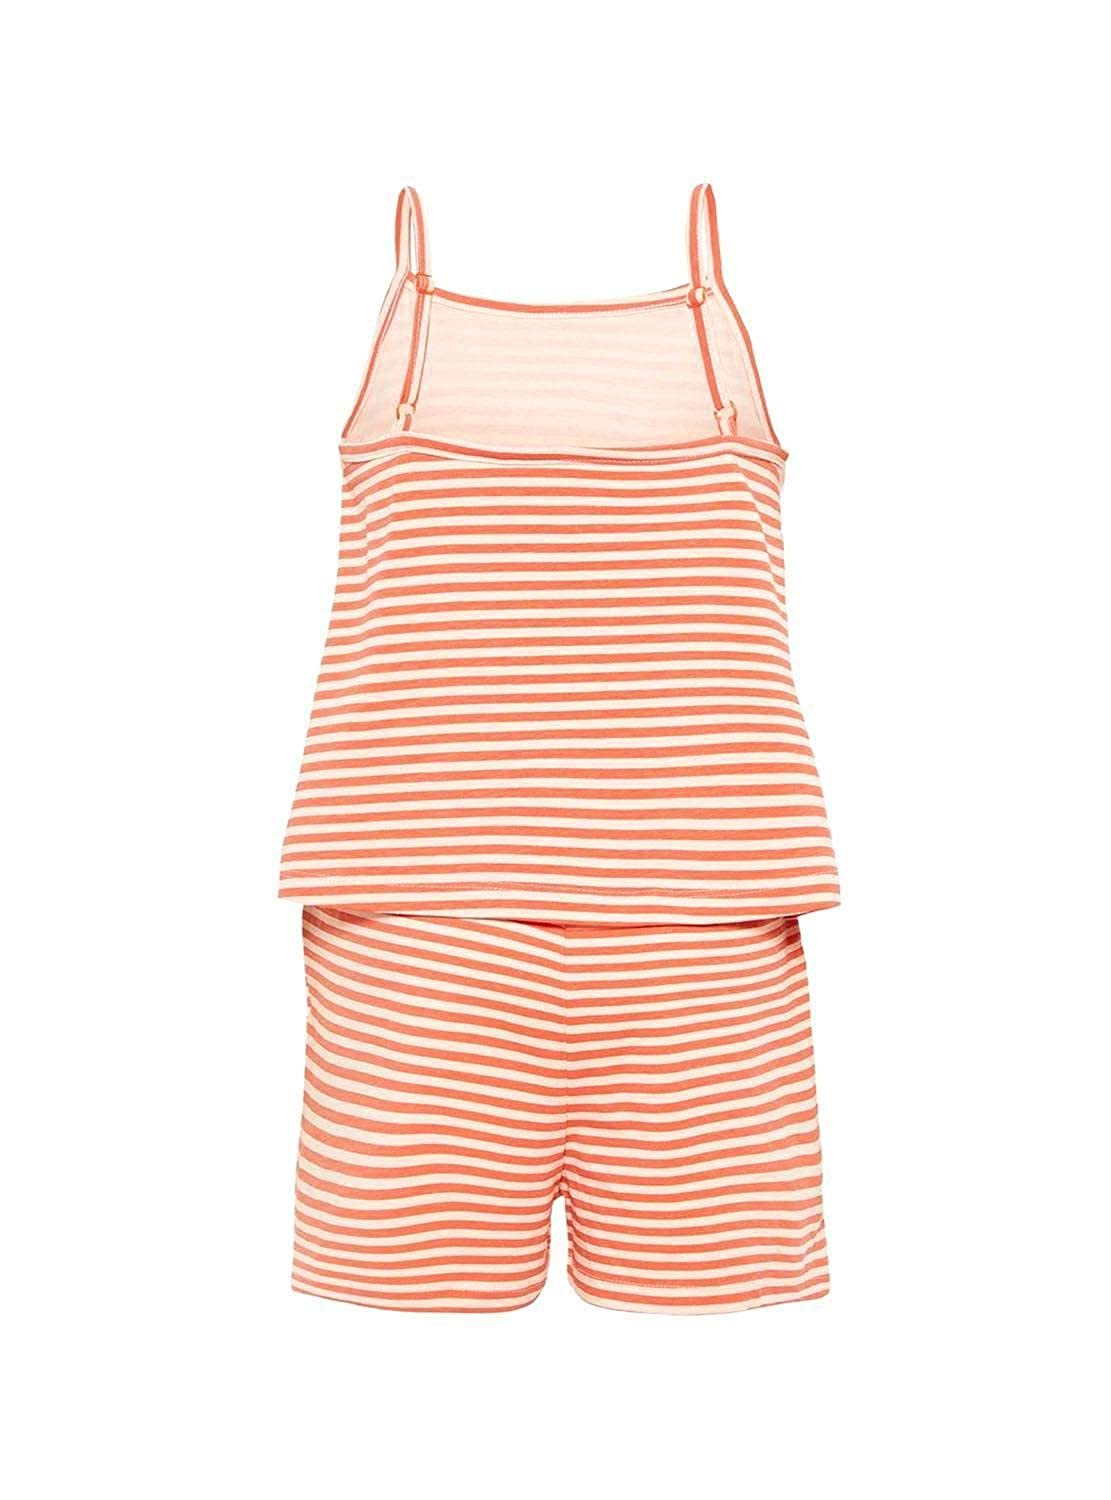 NAME IT M/ädchen Overall NKFPALMA Strap Suit Camp